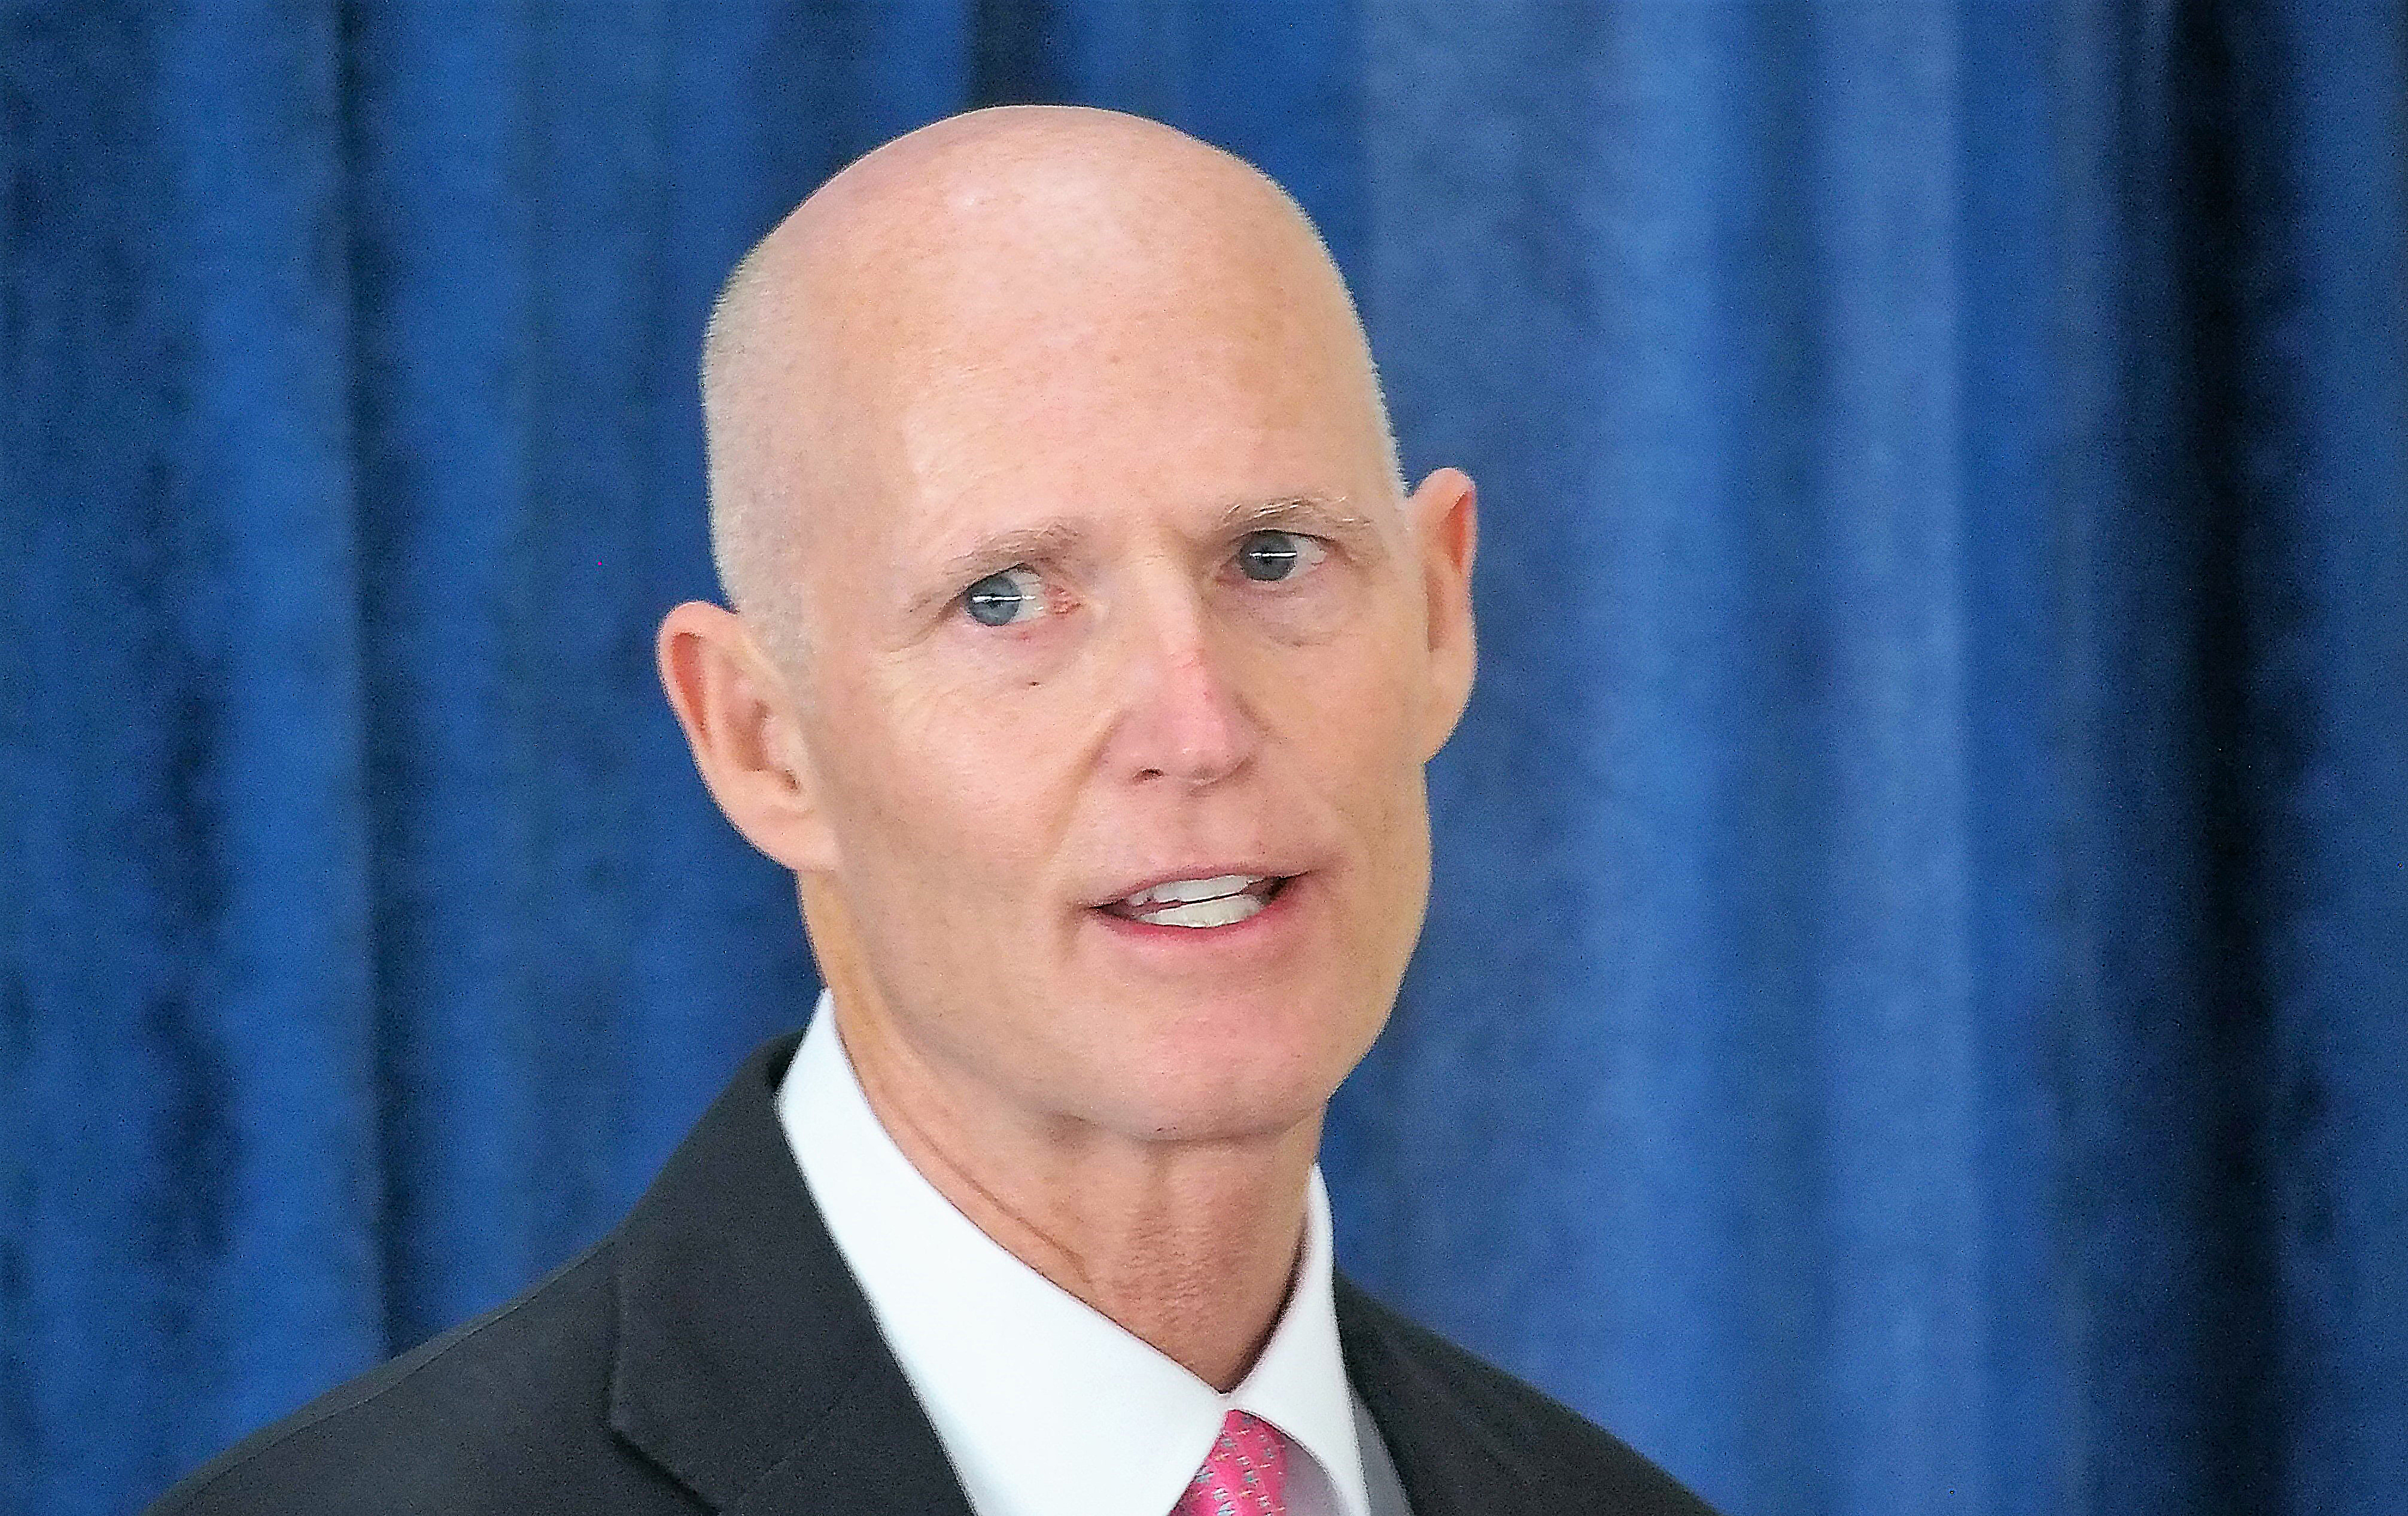 Florida governor to name ally as chief financial officer